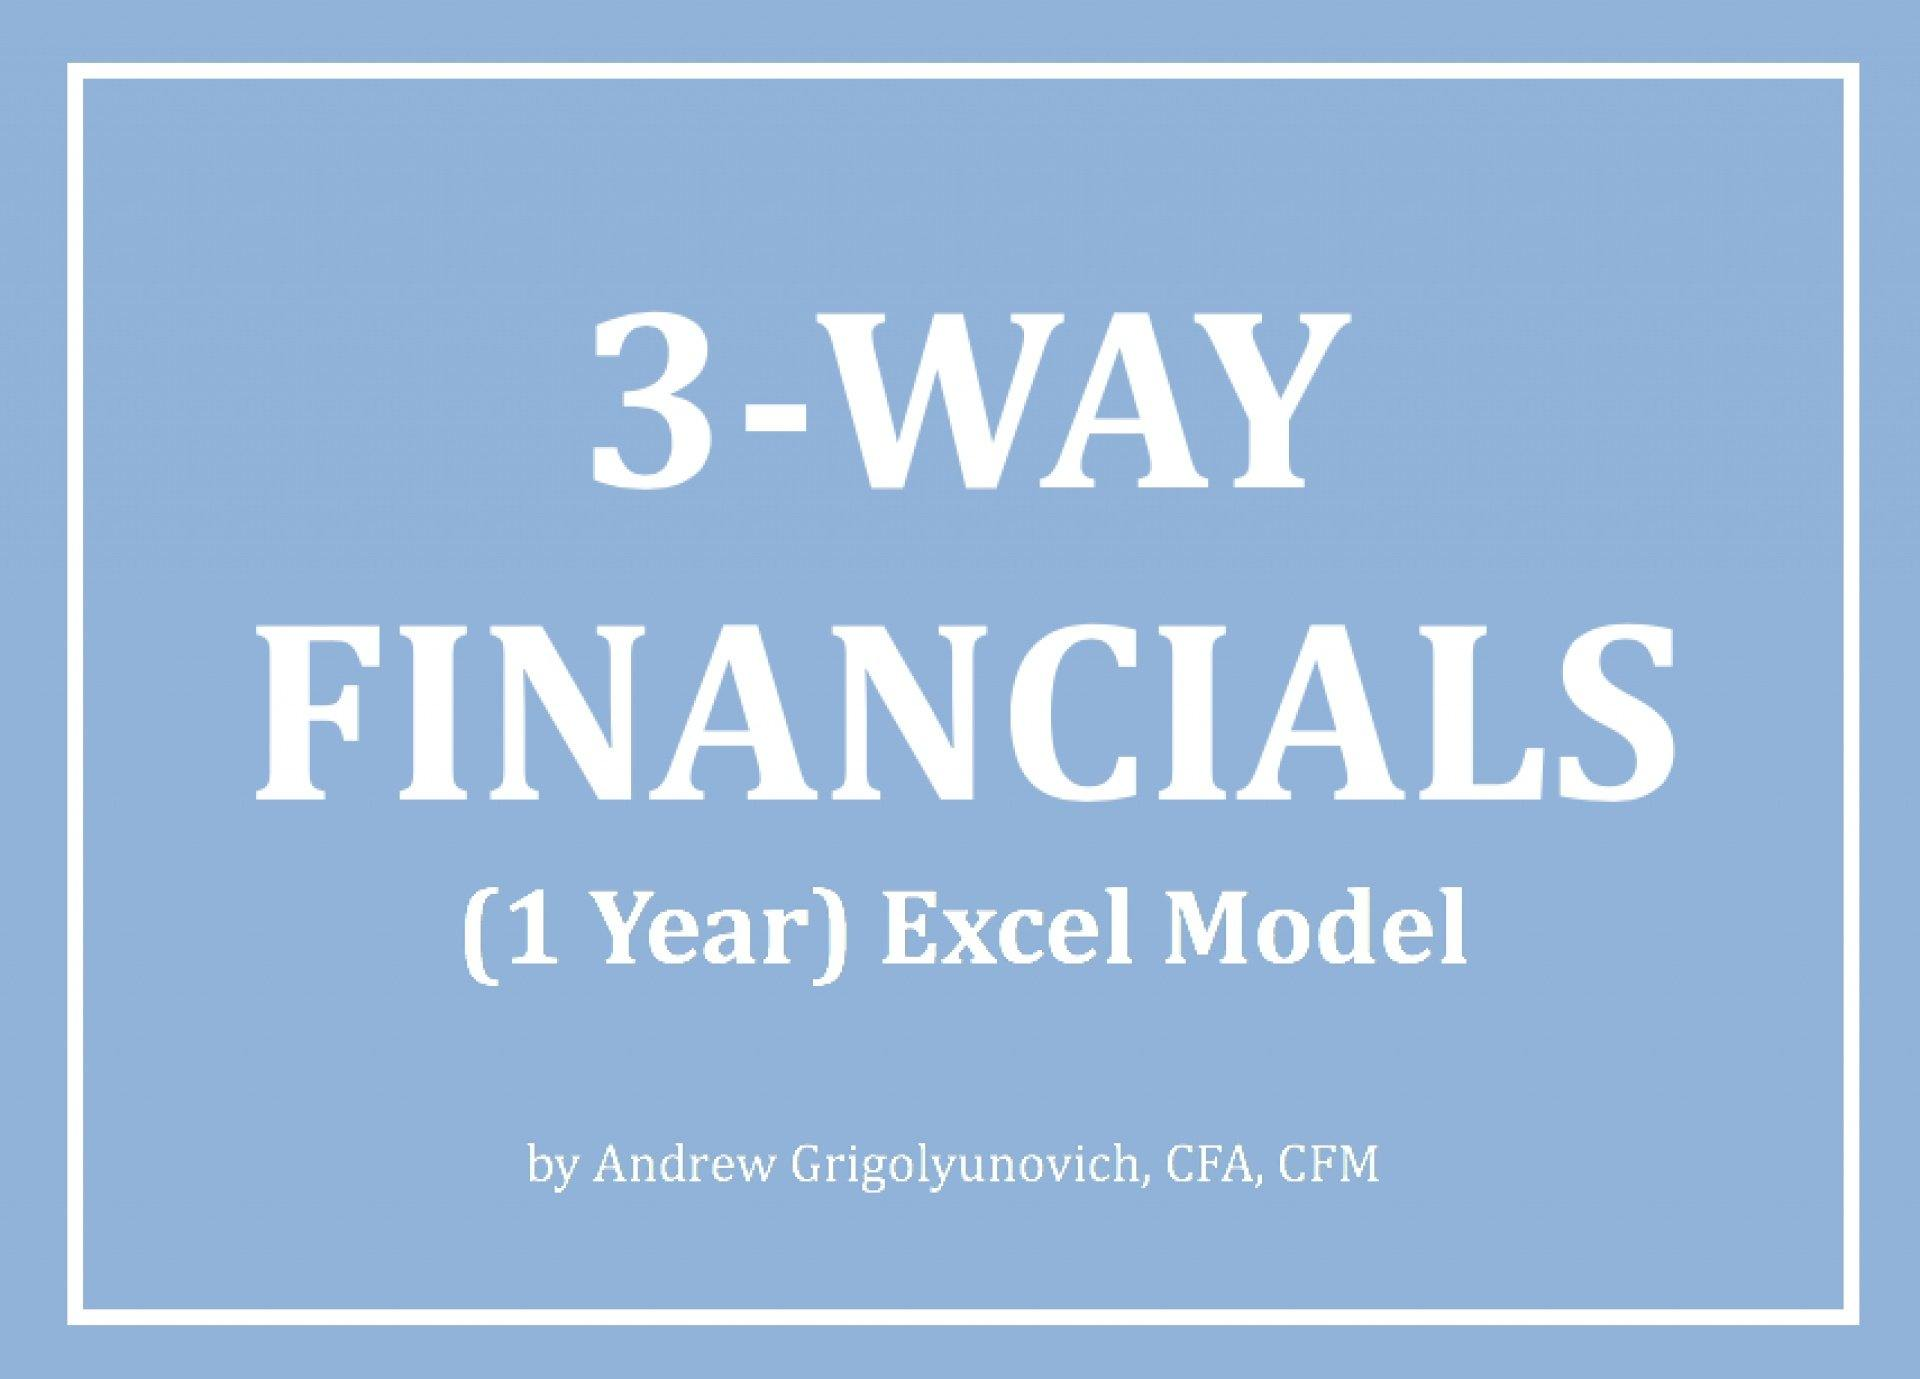 3-Way Financials (1 year) Excel Model - Templarket -  Business Templates Marketplace